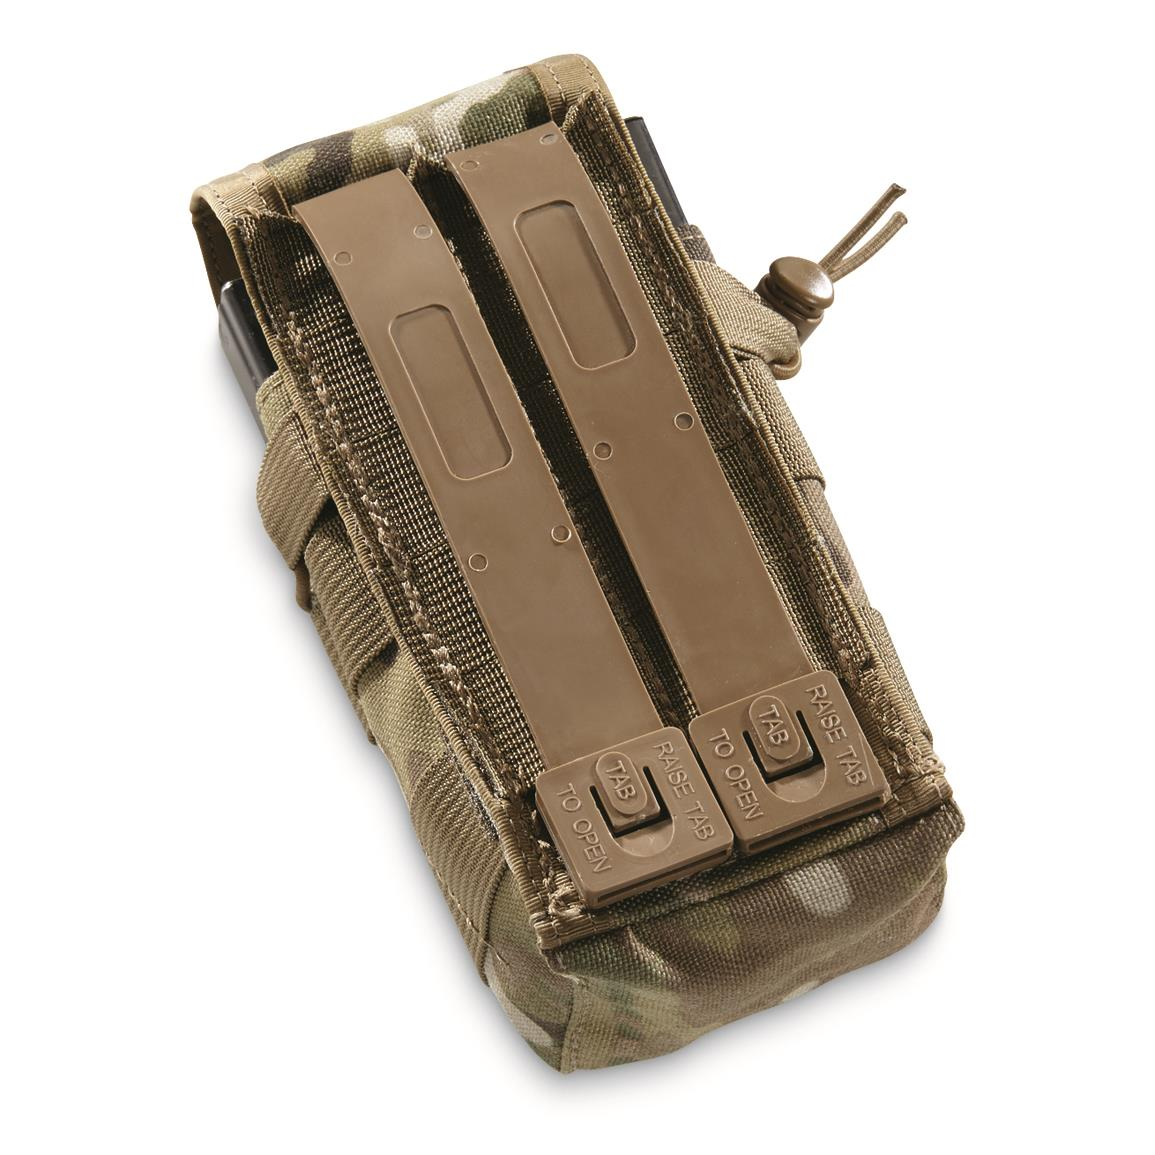 MOLLE system on back for easy attachment to other packs